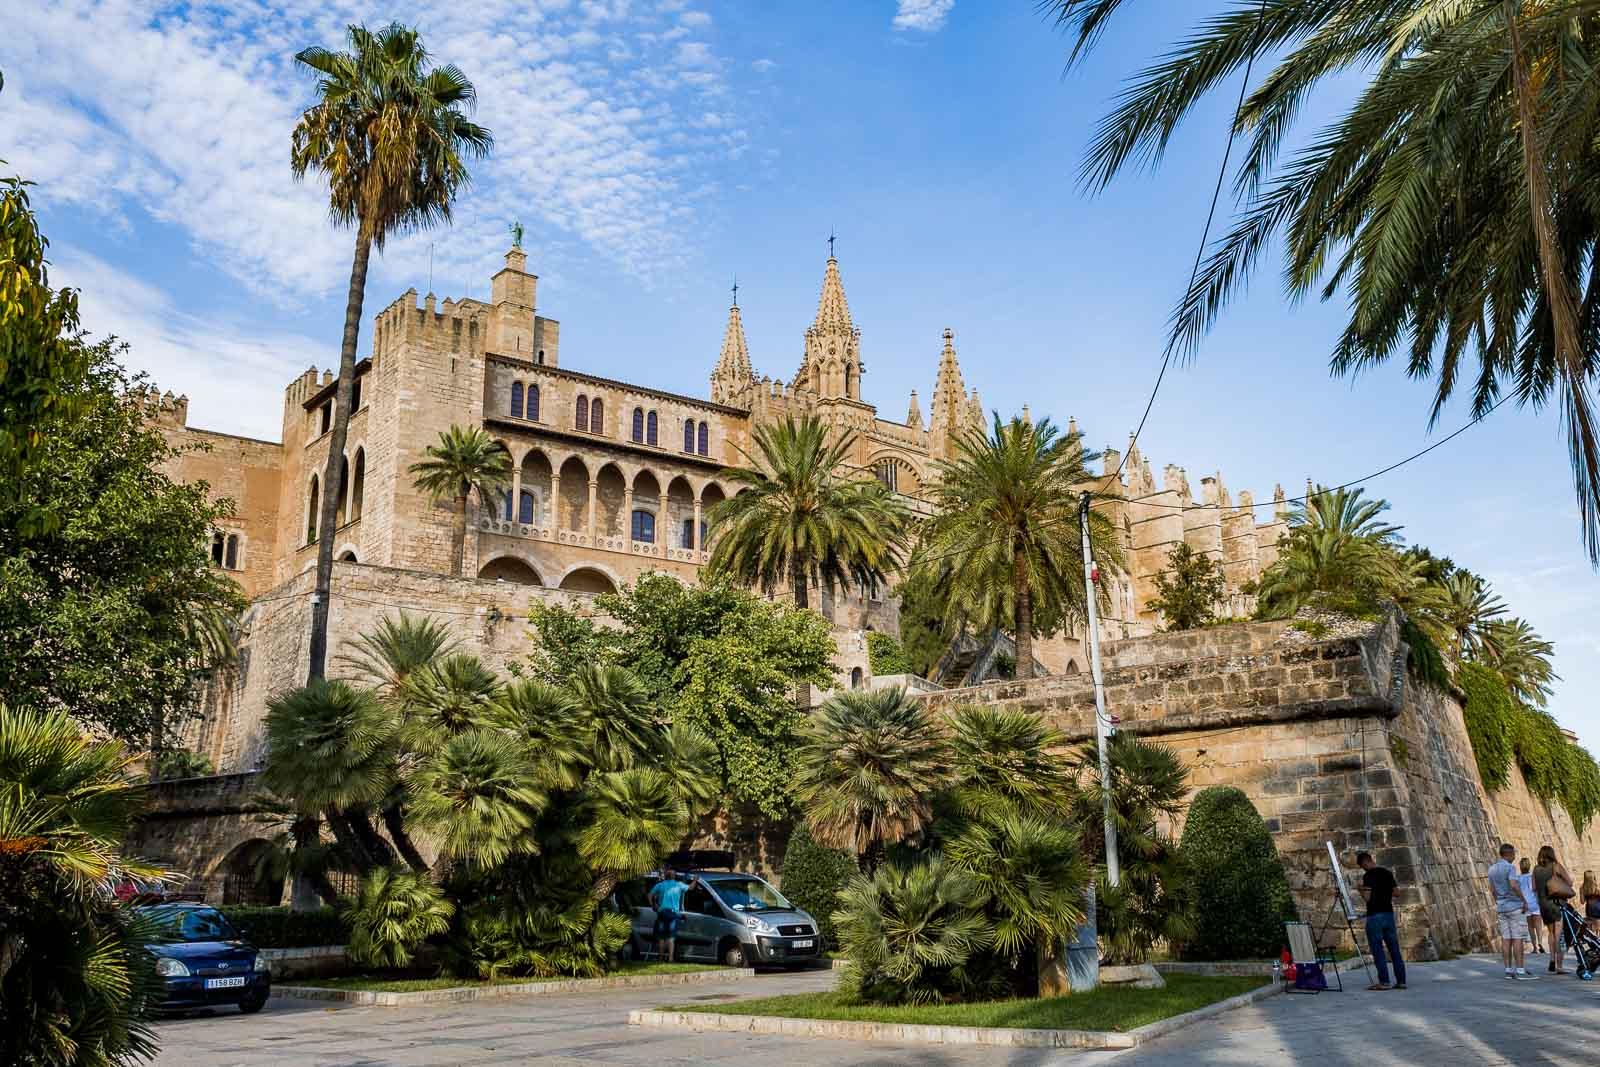 Cathedral and the royal palace in Palma de Mallorca